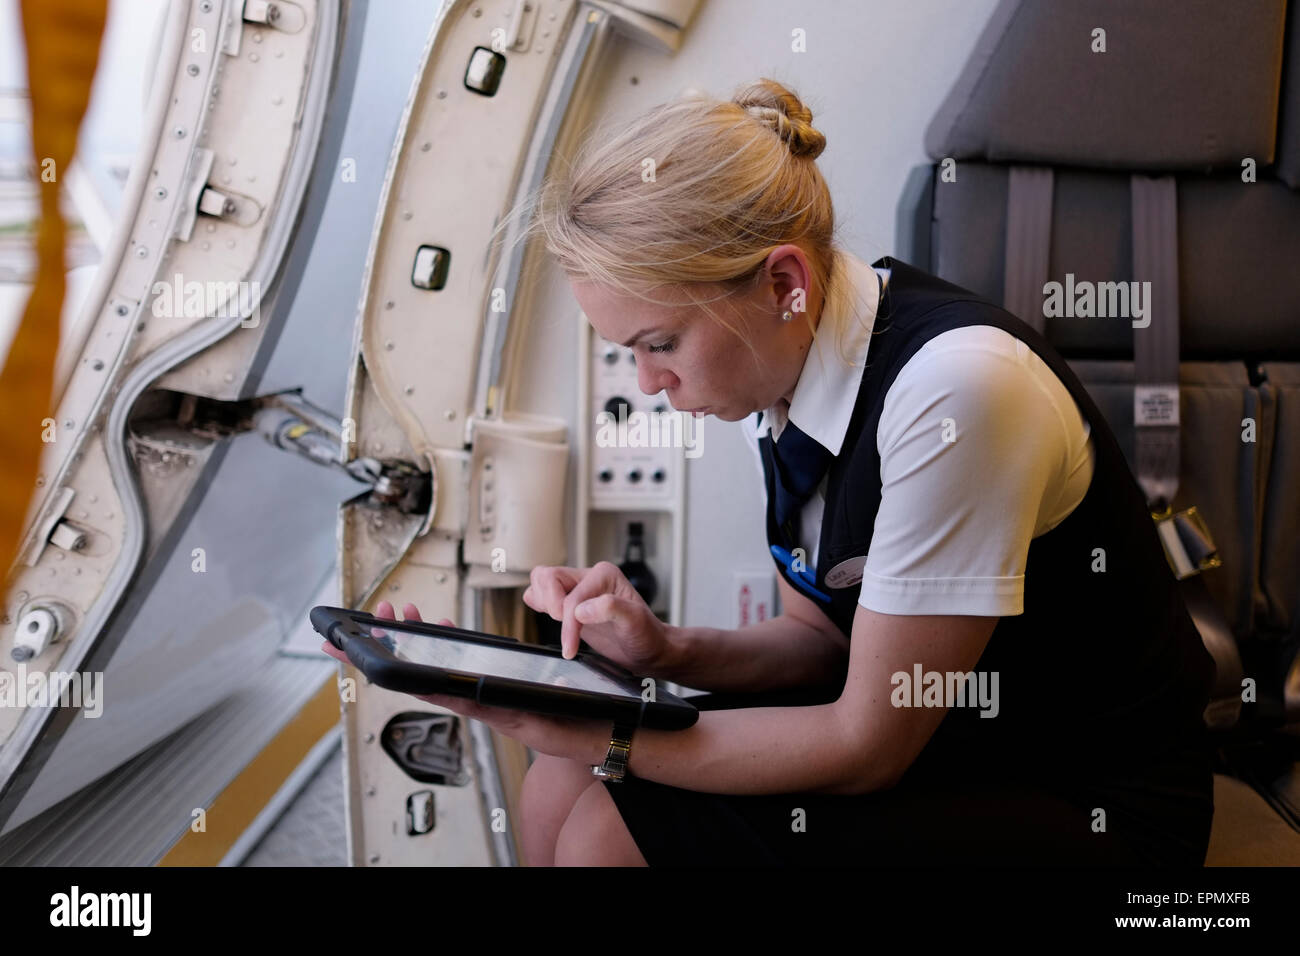 An airplane attendant using a tablet in Air Baltic plane - Stock Image